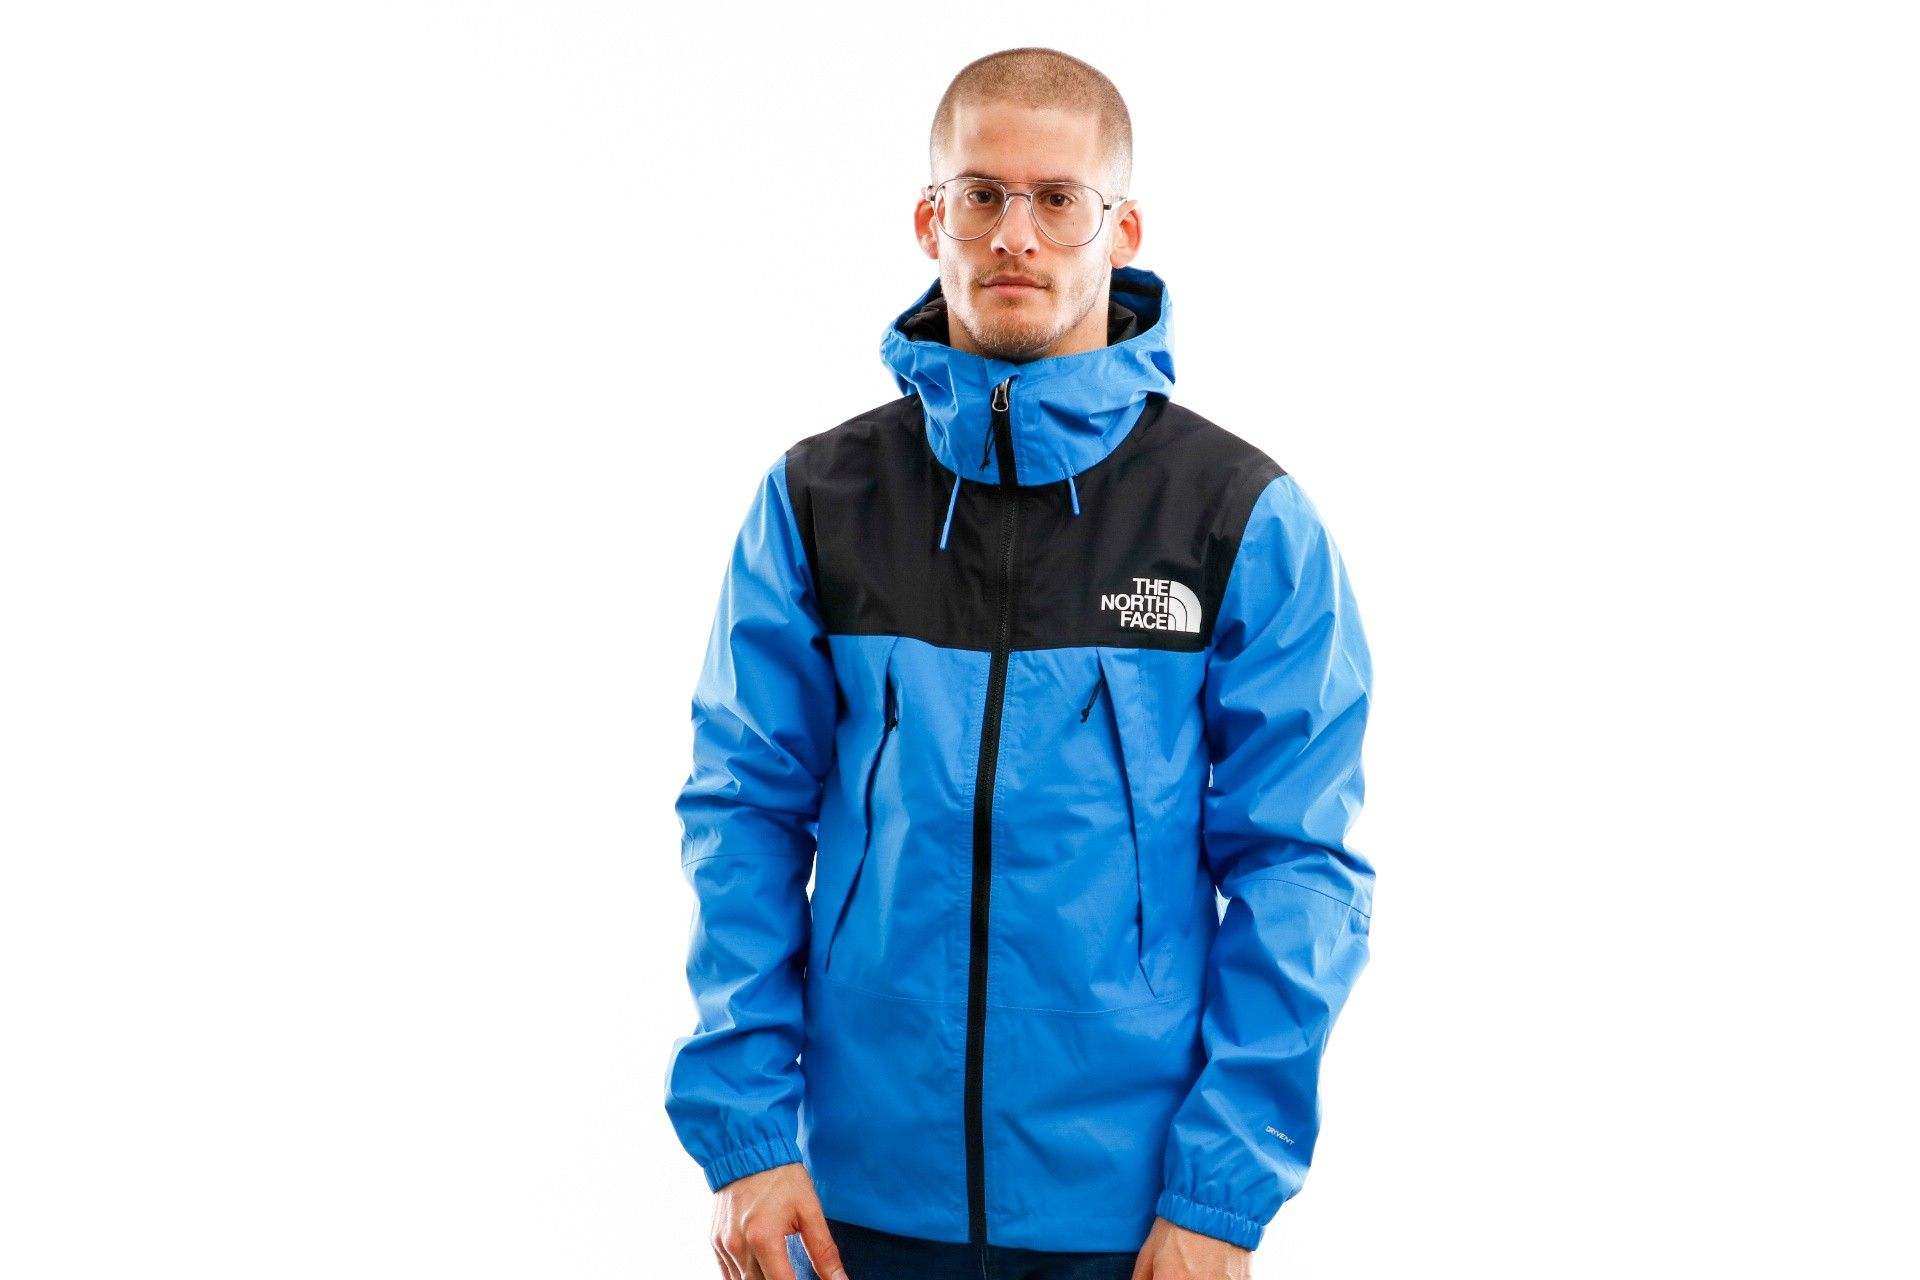 Afbeelding van The North Face Jacket Men's 1990 Mountain Q Jacket Clear Lake Blue NF0A2S51W8G